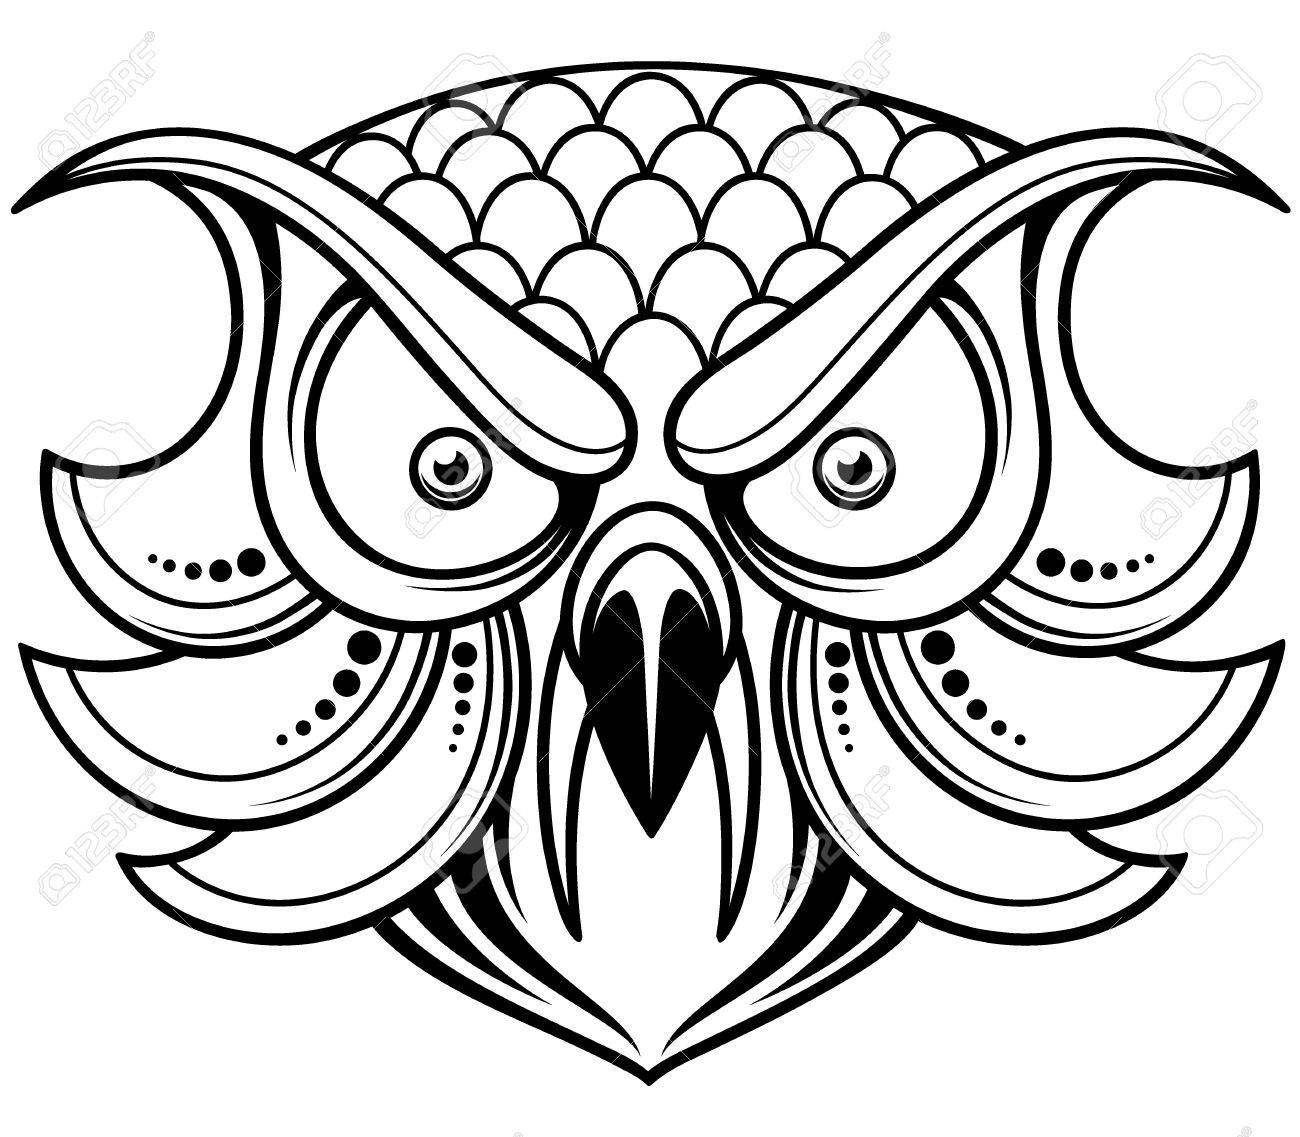 1300x1137 Outline Of An Owl Clip Art On Tattoo By Isisfiredancer Clipart